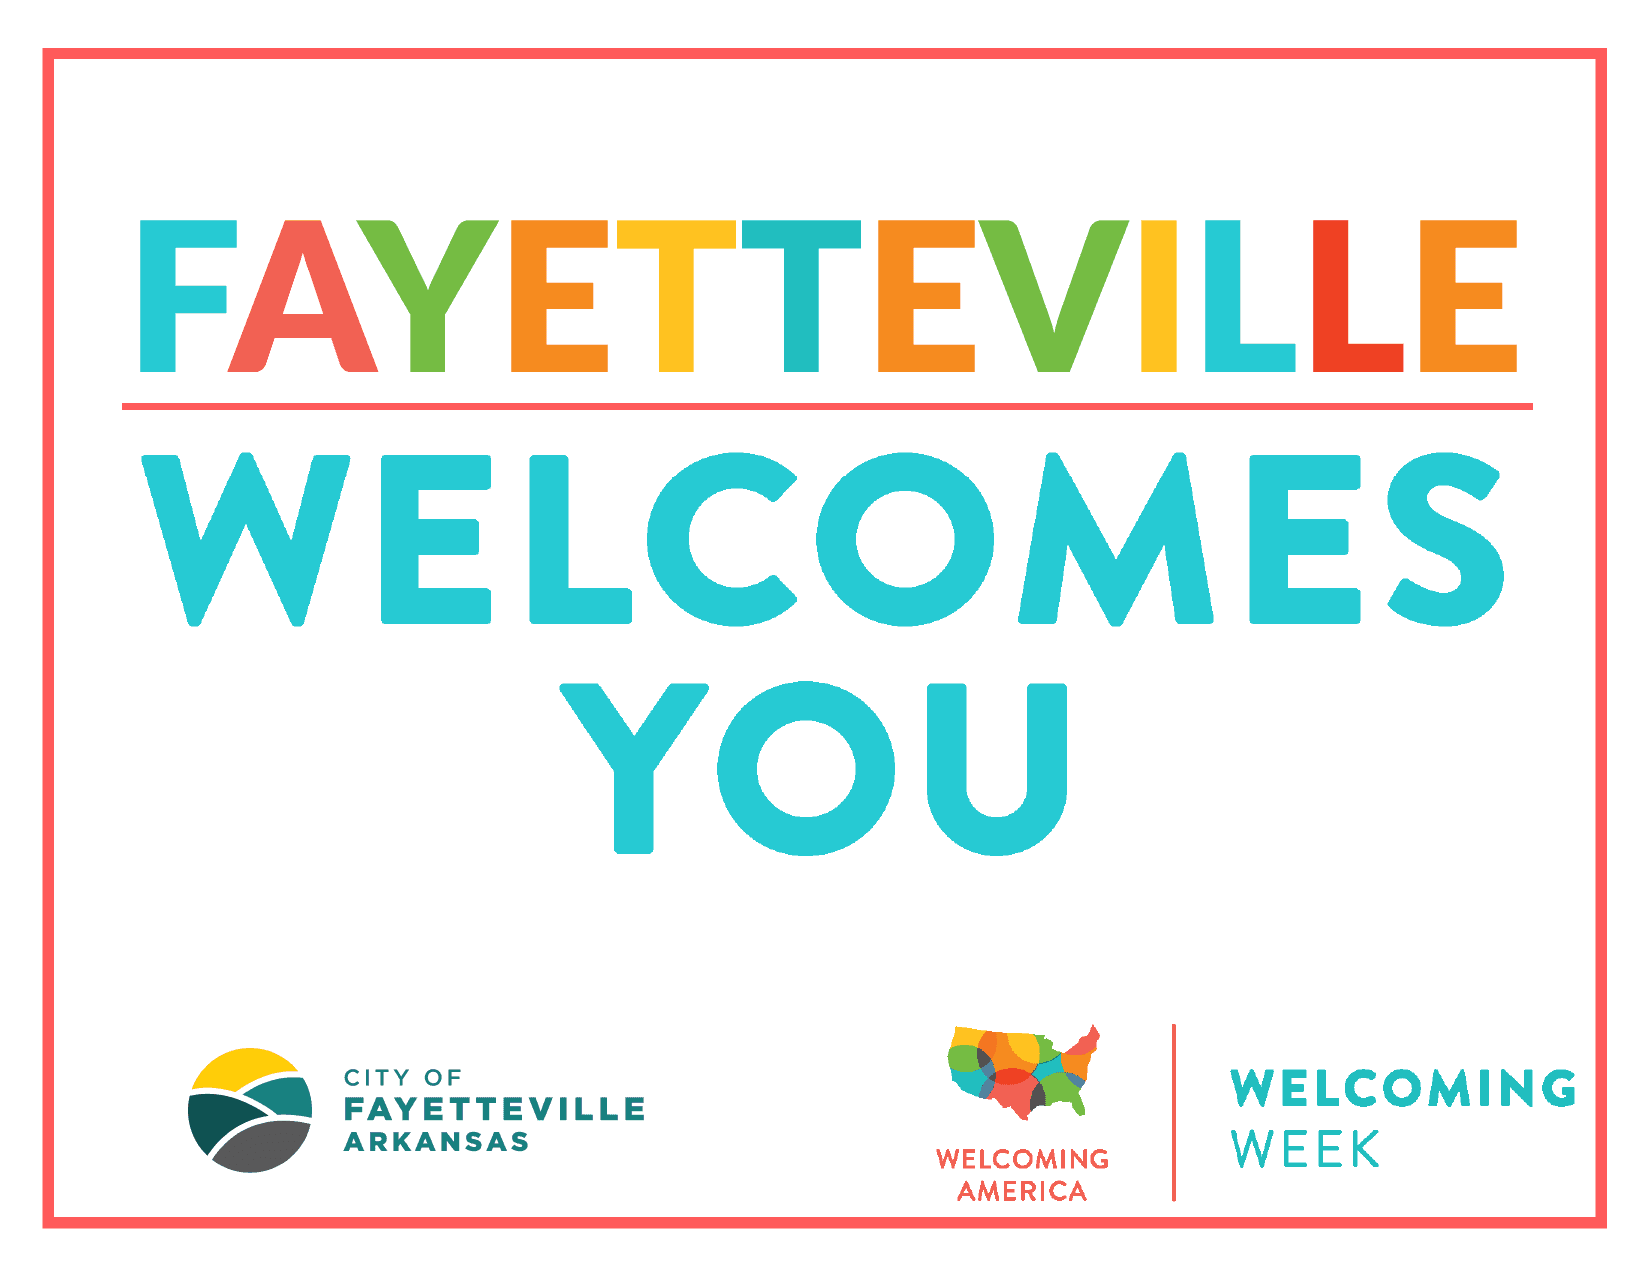 Fayetteville Welcomes You sign 2020-01